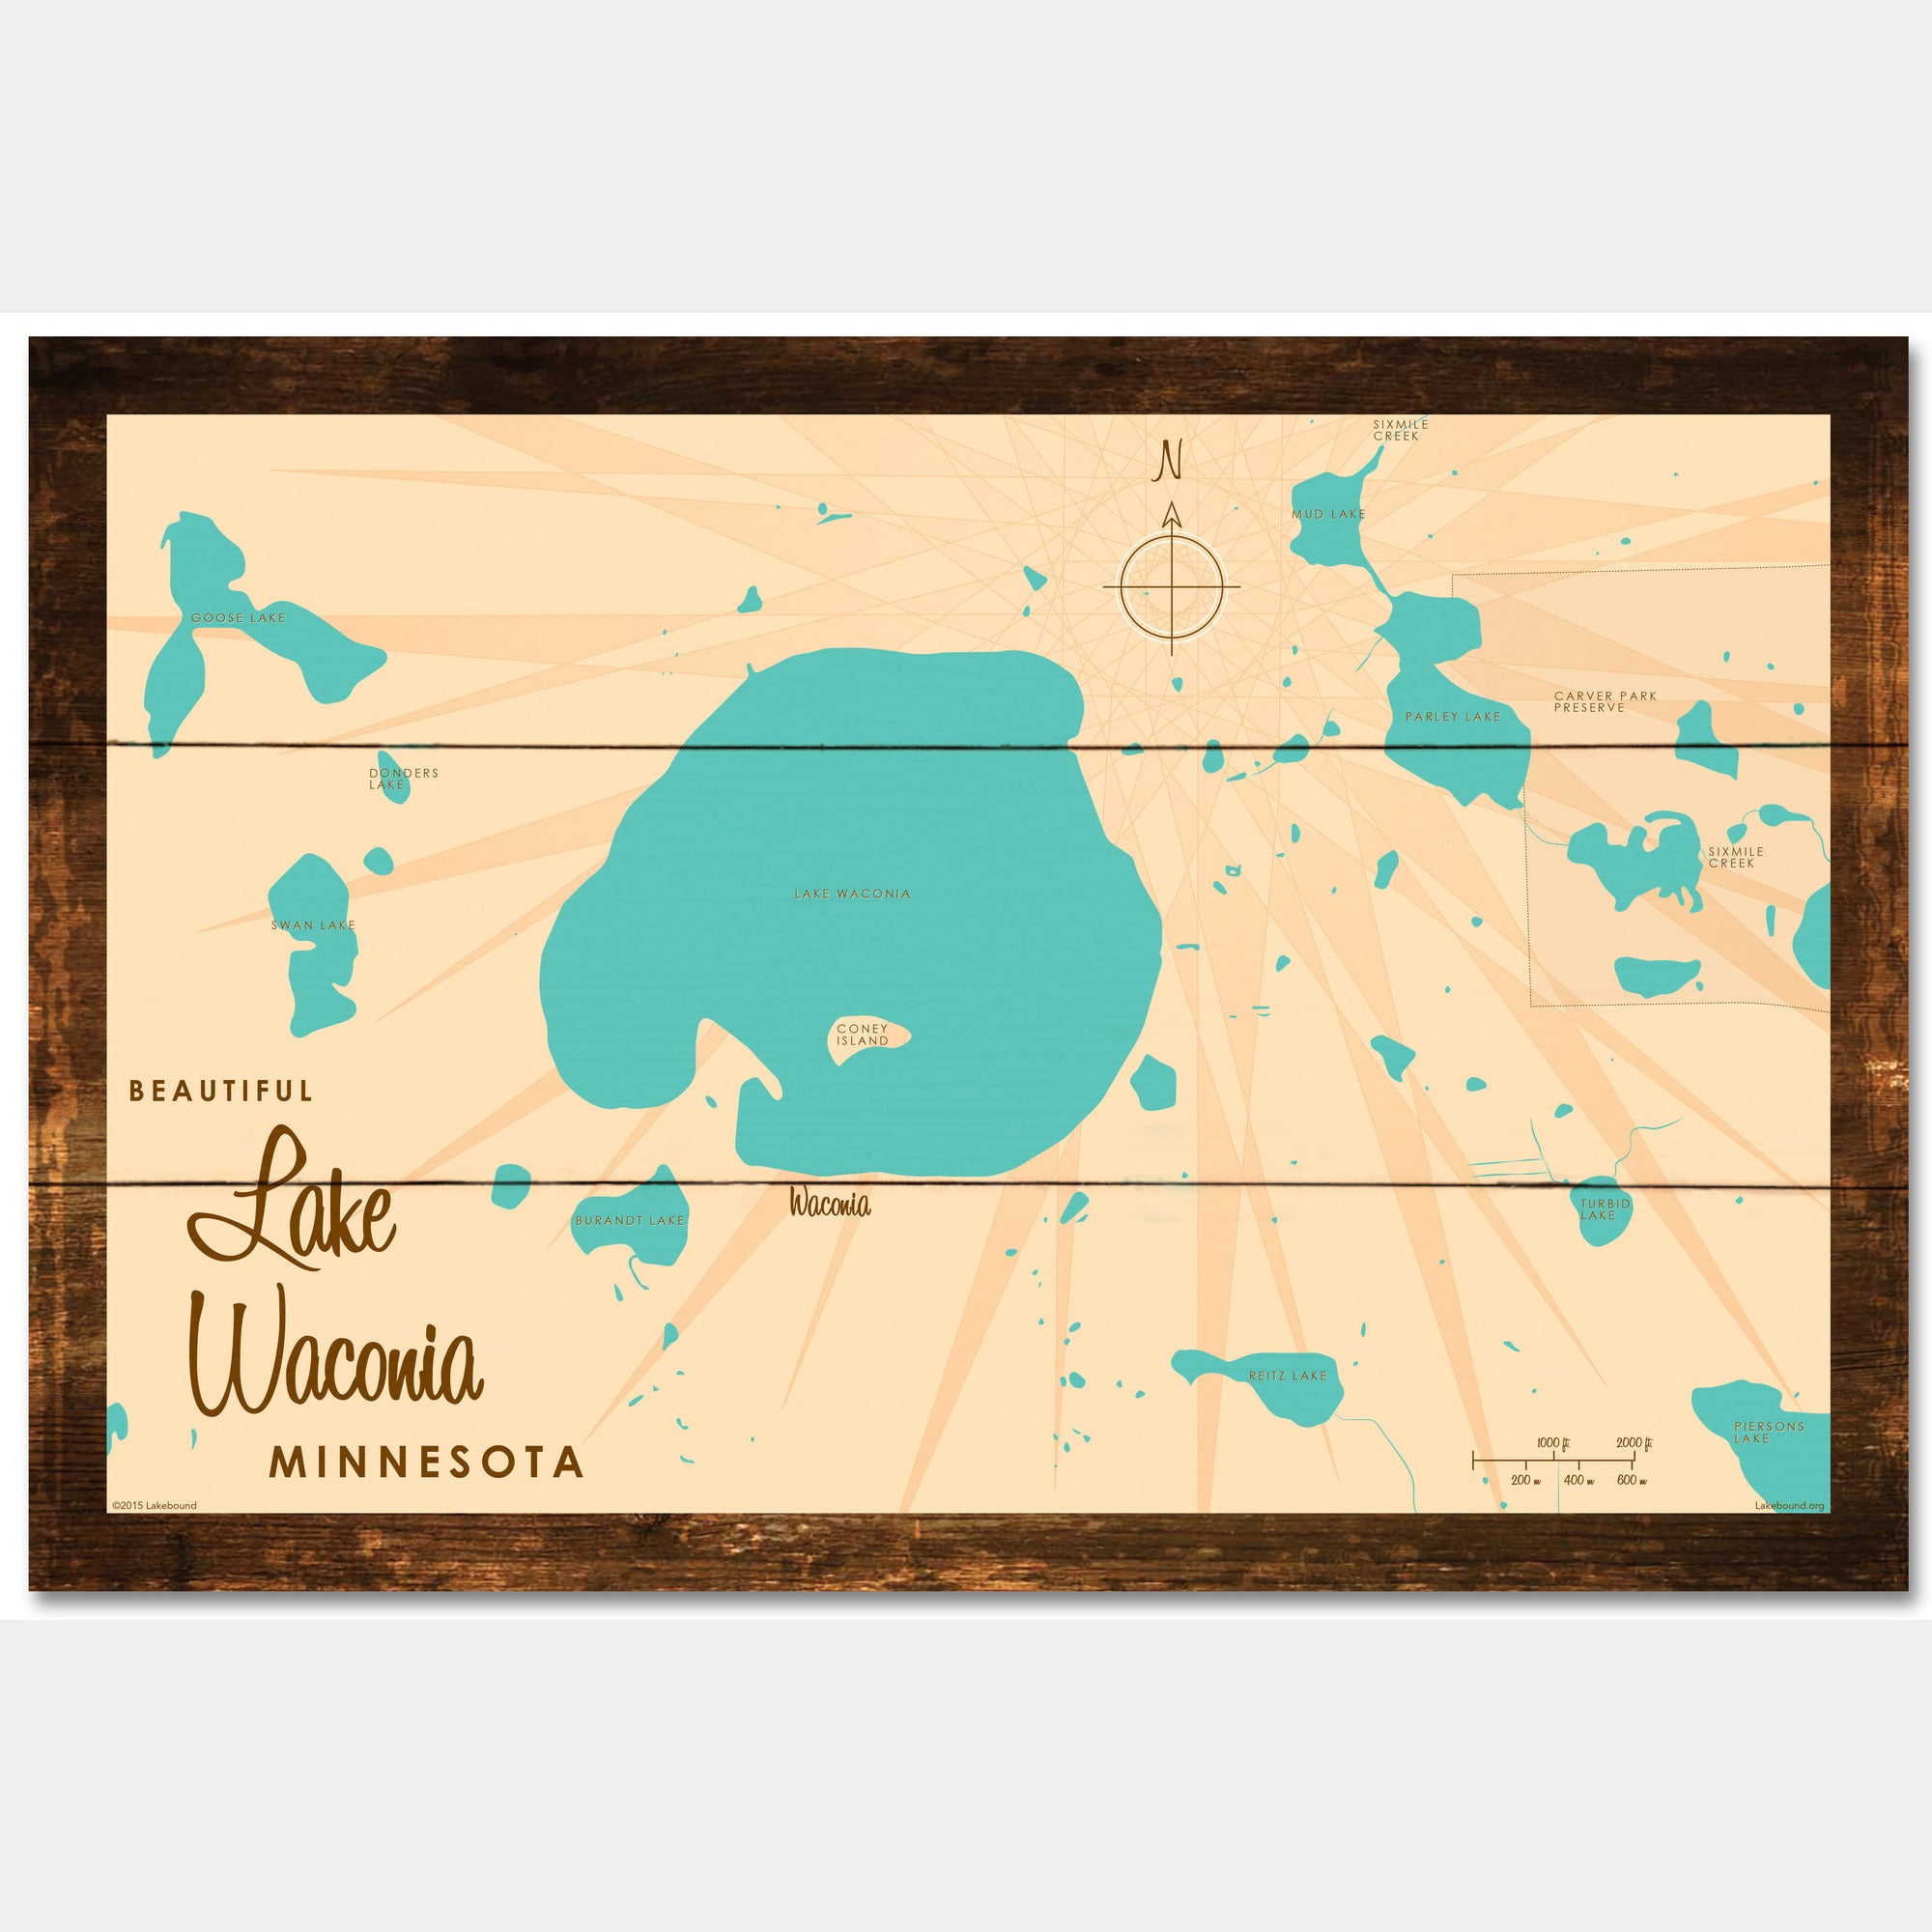 Lake Waconia Minnesota, Rustic Wood Sign Map Art